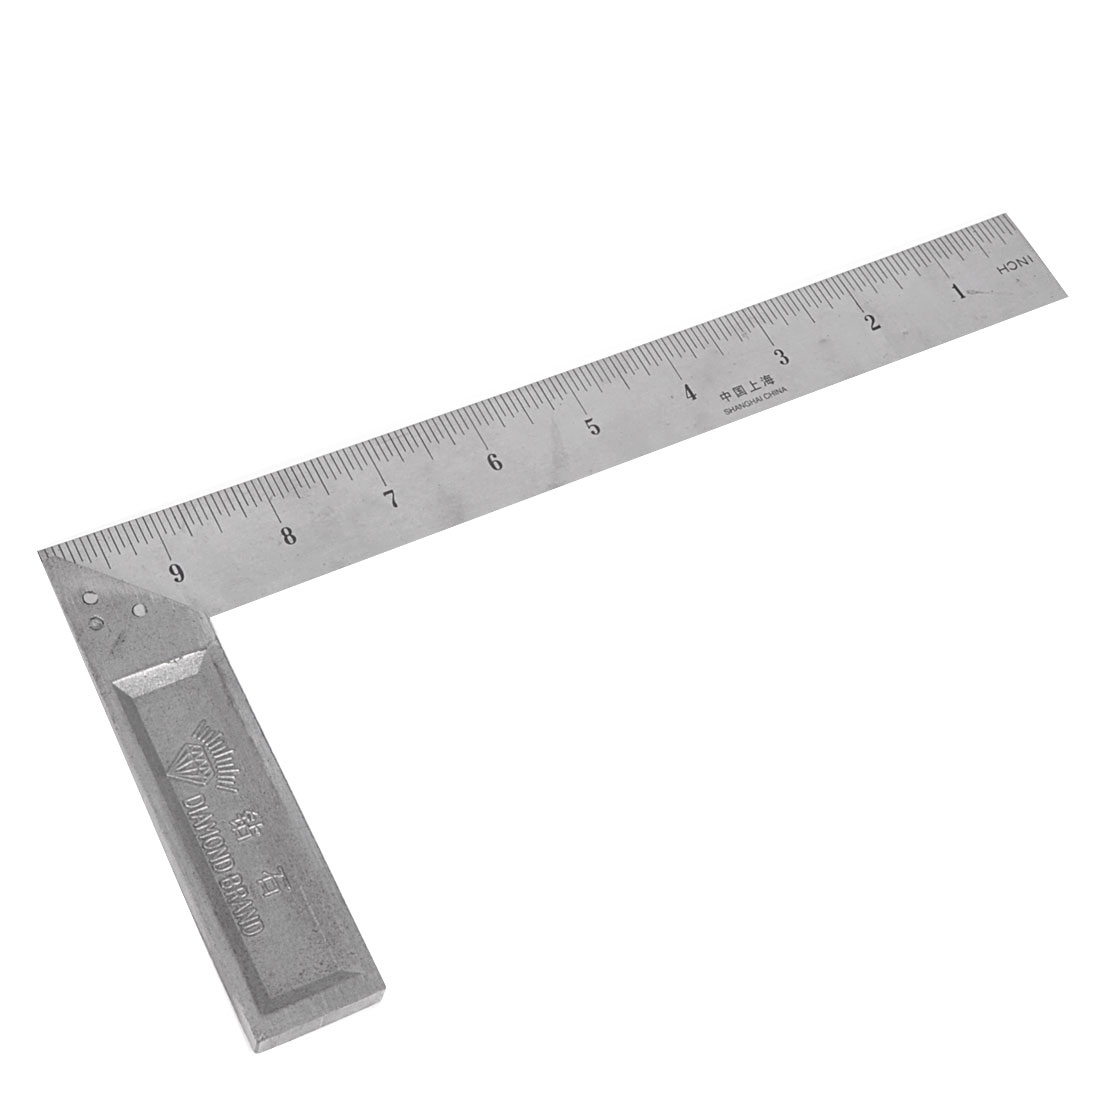 90 Degree Angle 0 - 25 Centimeters 0-10 Inch Metal Square Ruler Silver Tone